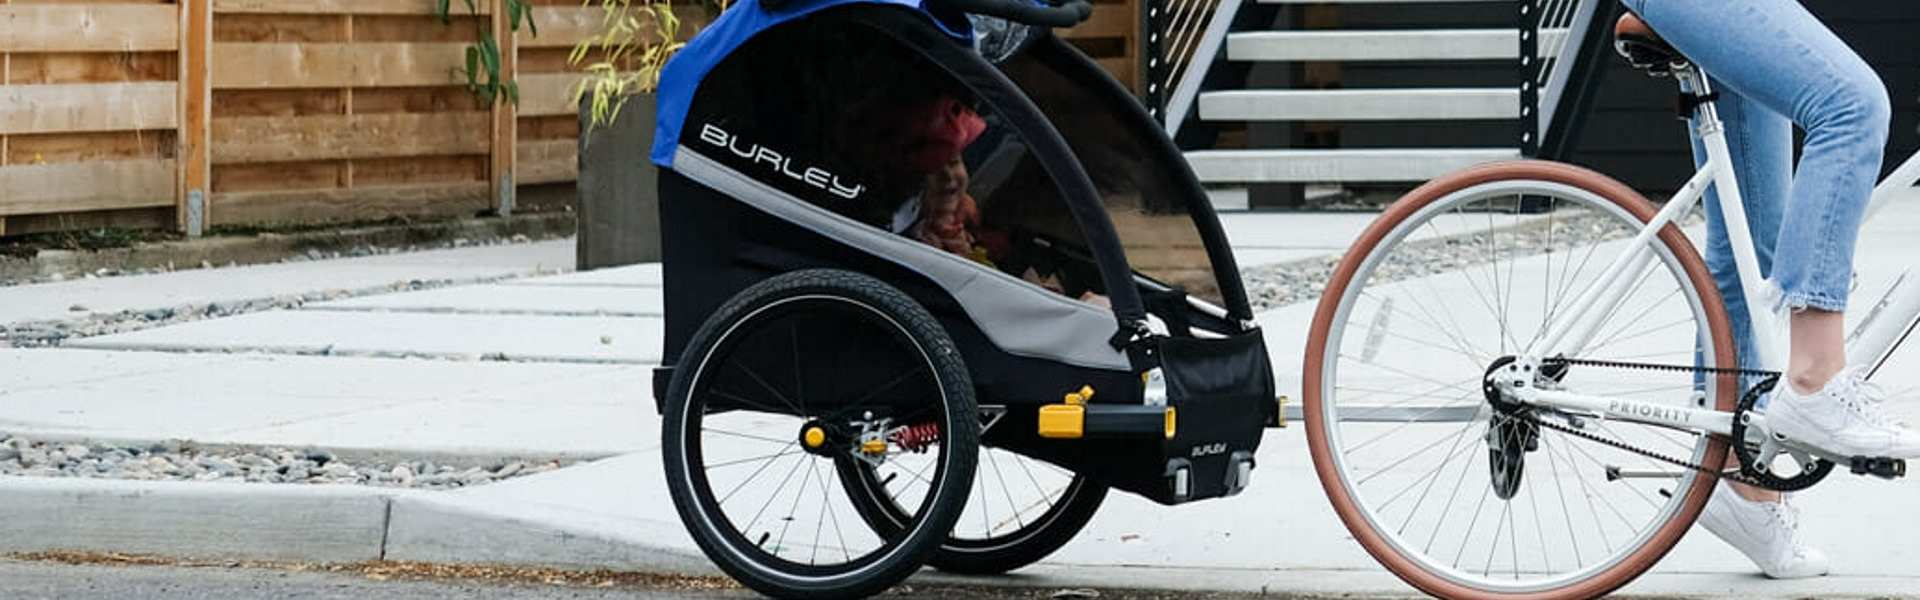 Best Bike Trailers Reviewed in Detail